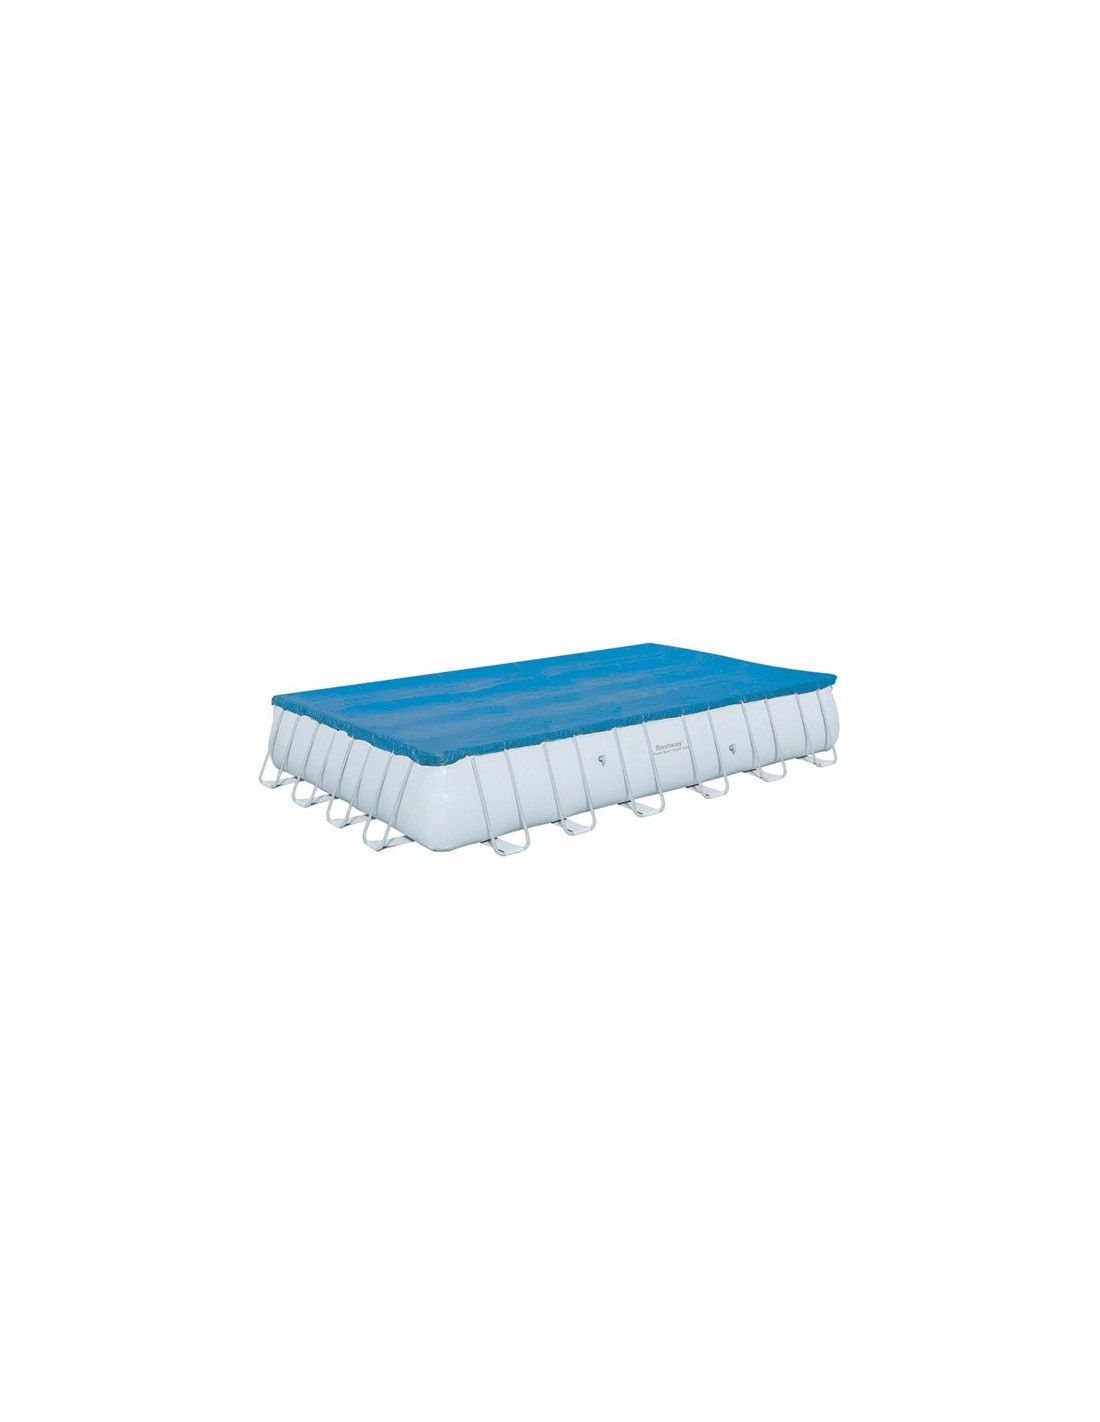 Piscine rectangulaire tubulaire bestway avec filtre sable for Piscine tubulaire bestway